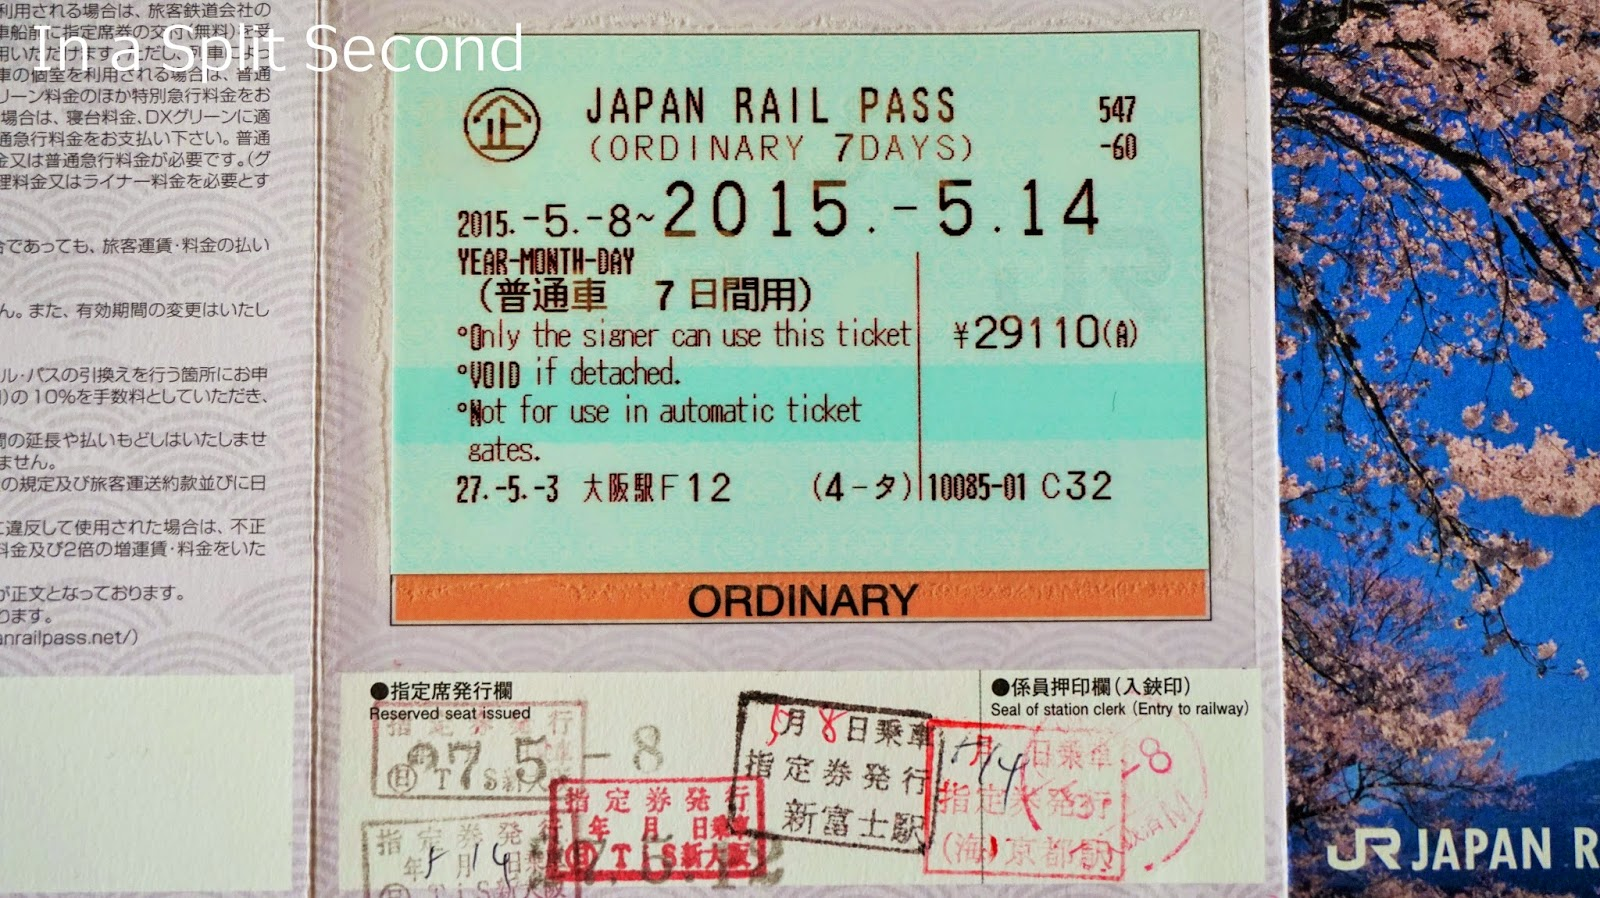 Voucher Keihan Kyoto Osaka Sightseeing Pass 1 Day In A Split Second Trains And Railway Systems We Used Japan Jr